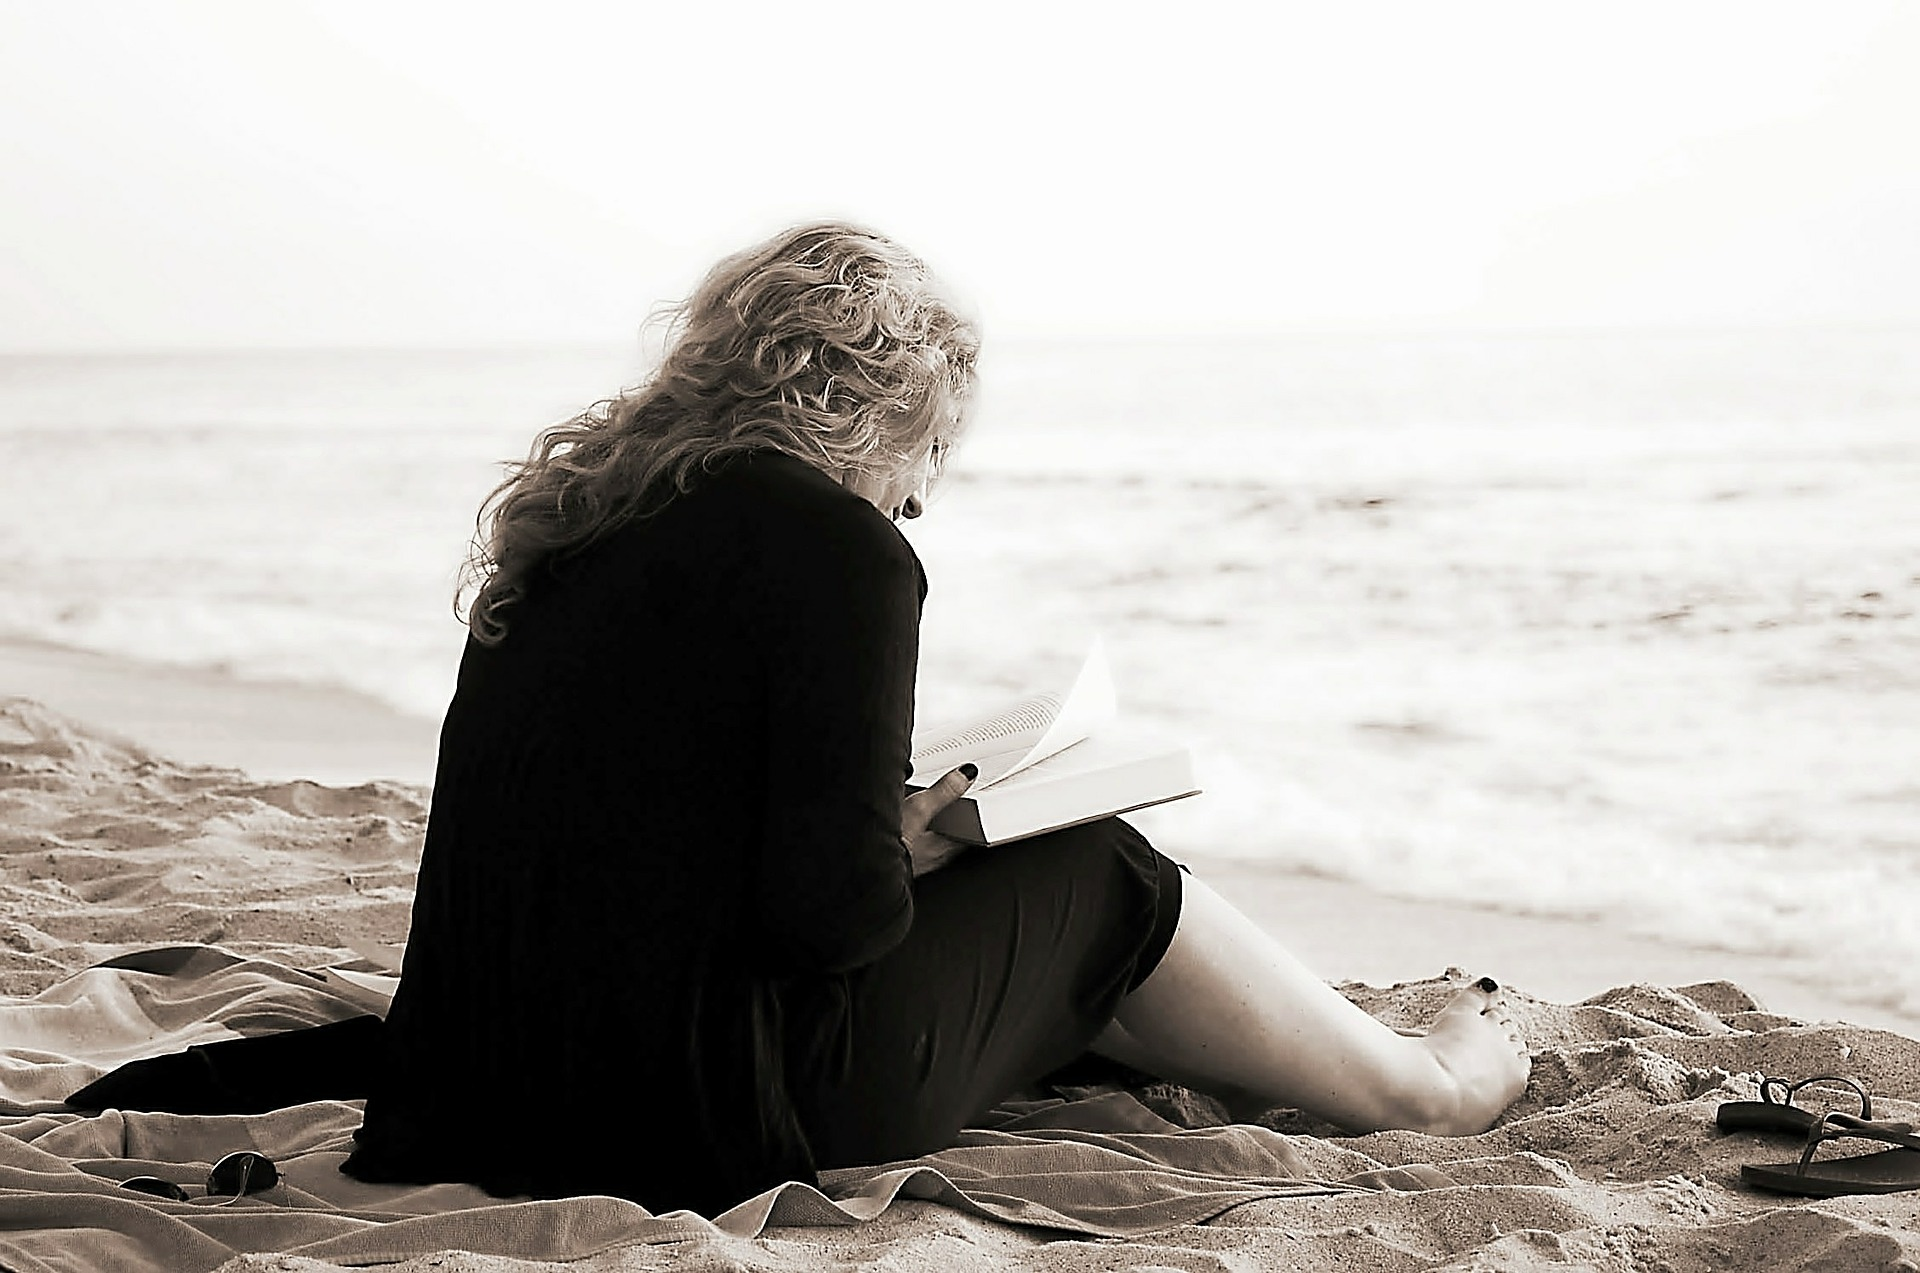 Lady sitting on the beach reading a book